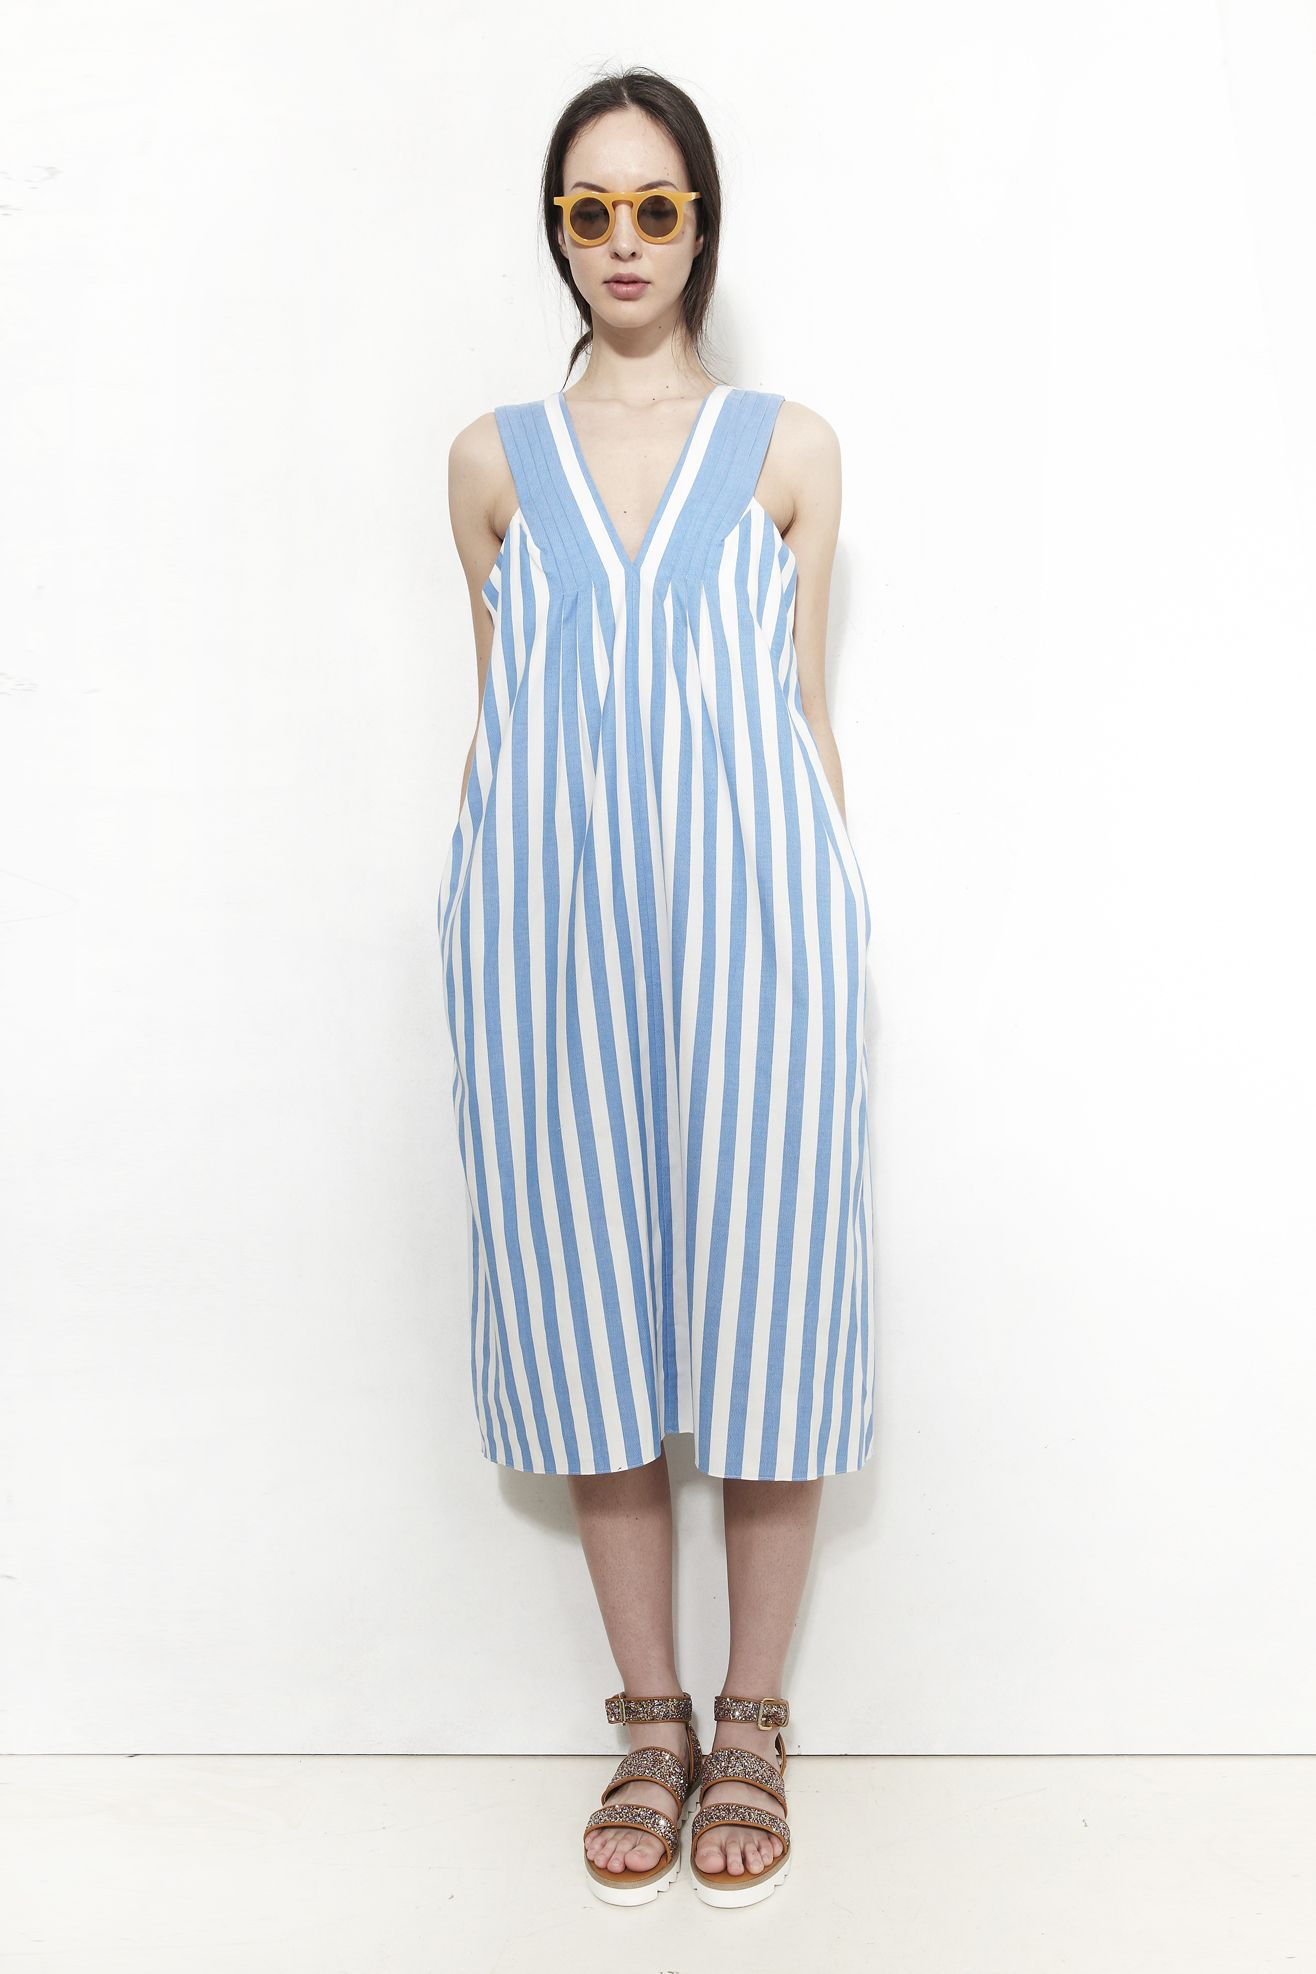 CARLEEN, Pleat Midi Dress, Pool Stripe | Mr. Larkin